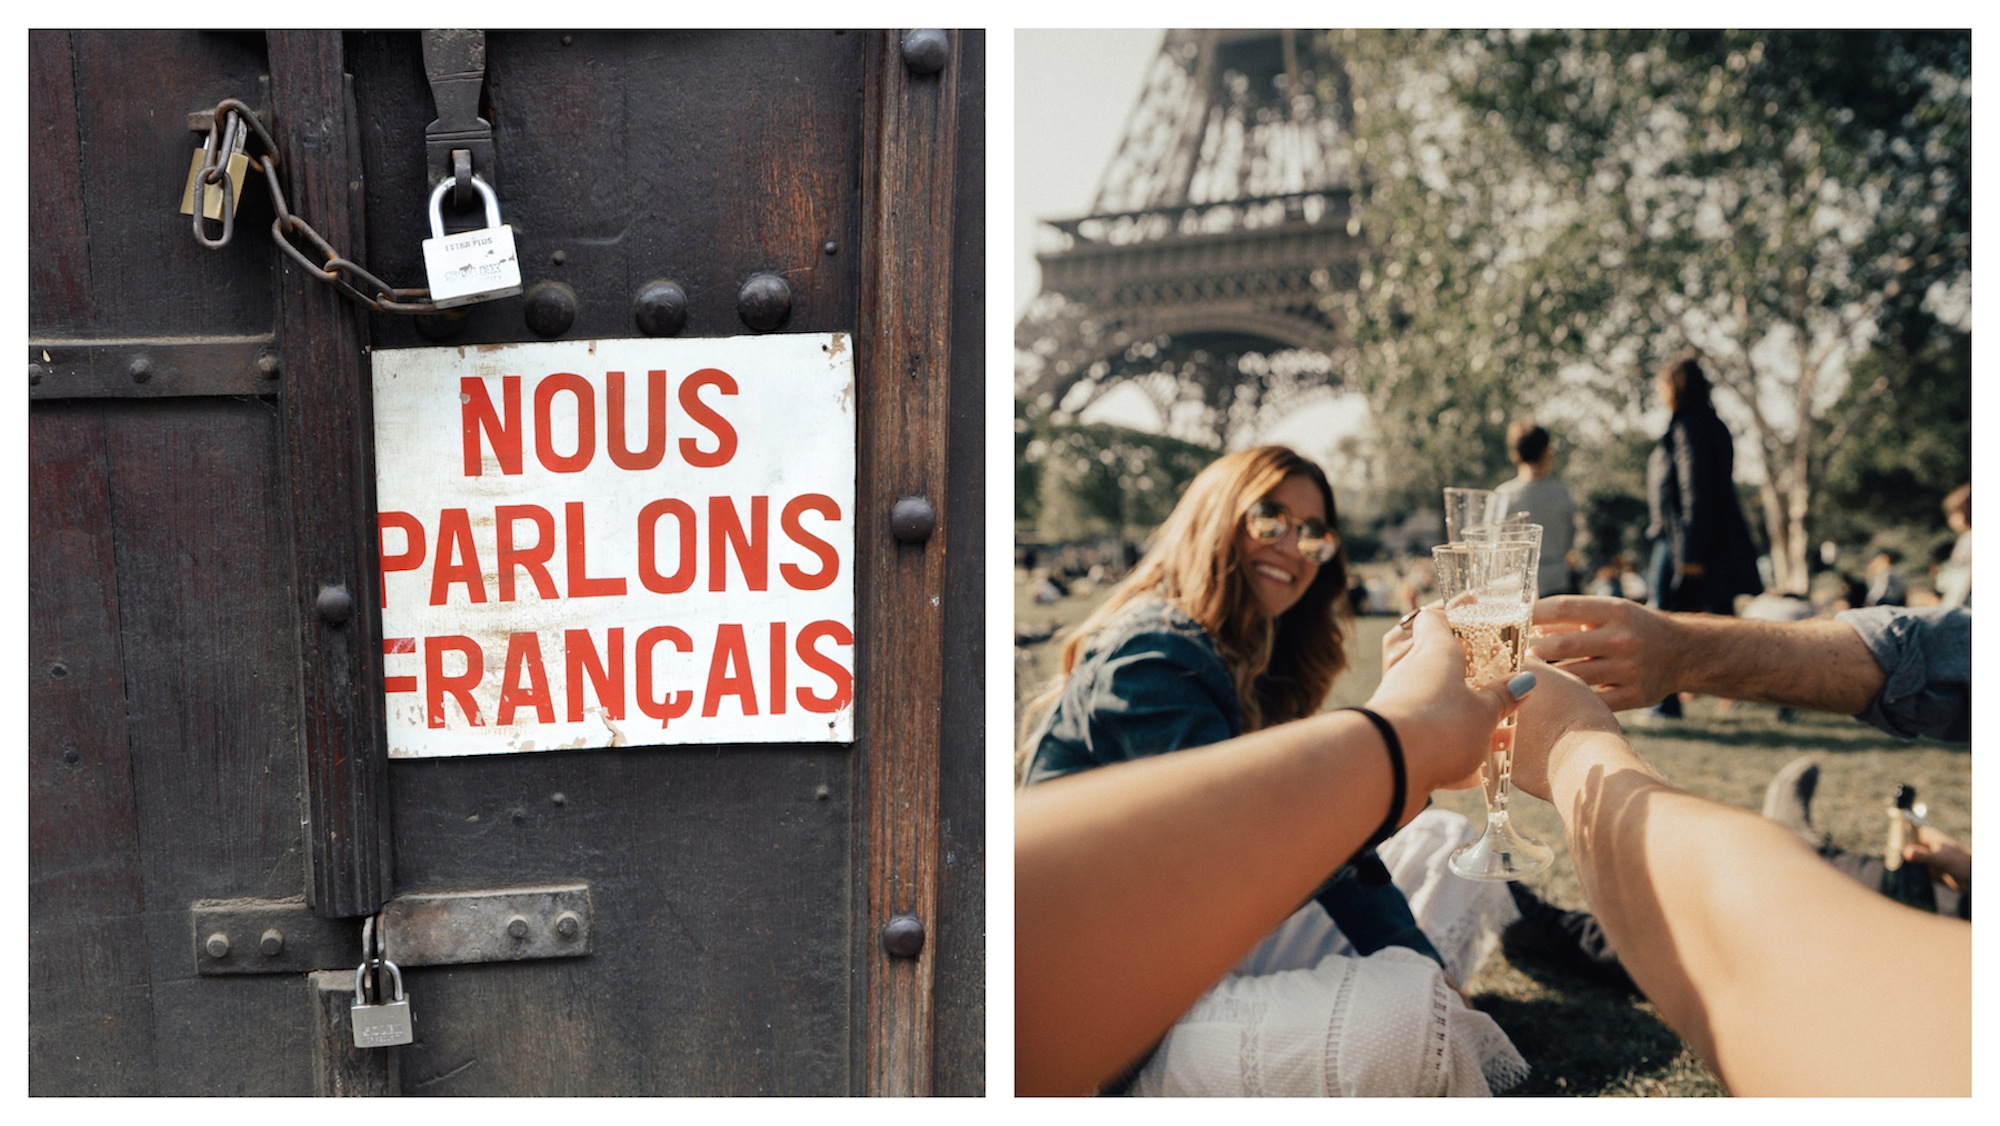 A 'We speak French' sign outside a locked door (left). Friends having a picnic in Paris with Eiffel Tower views (right).